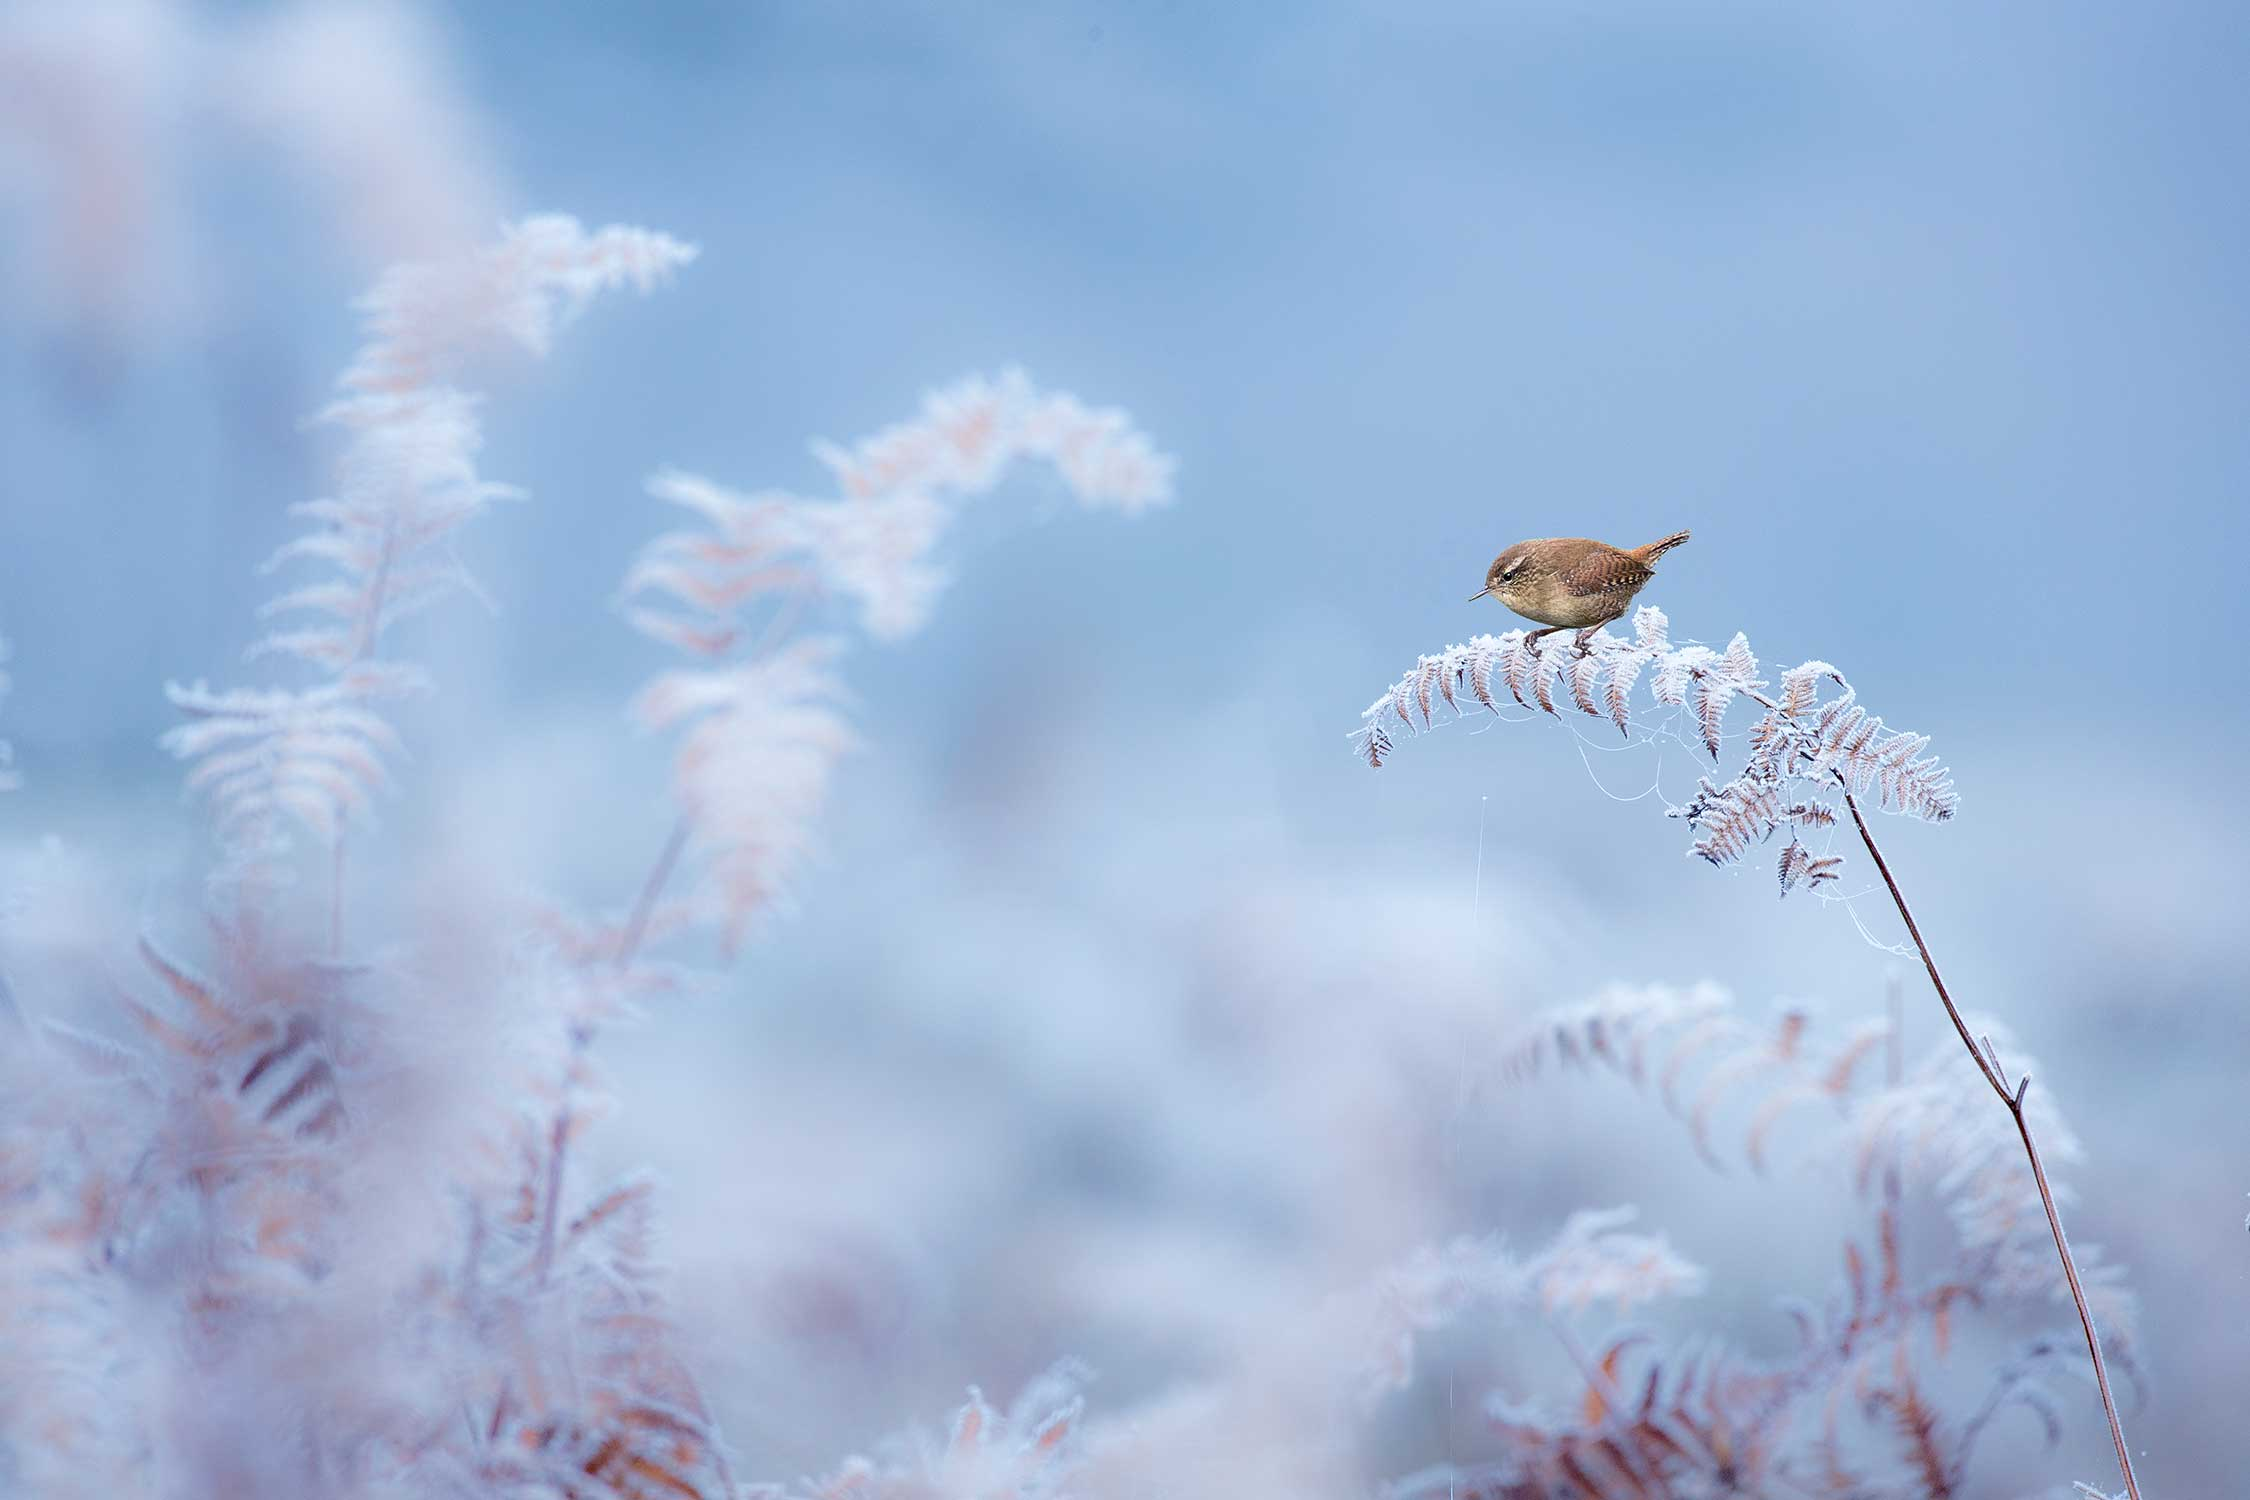 bird frozen british wildlife photography award by ben hall